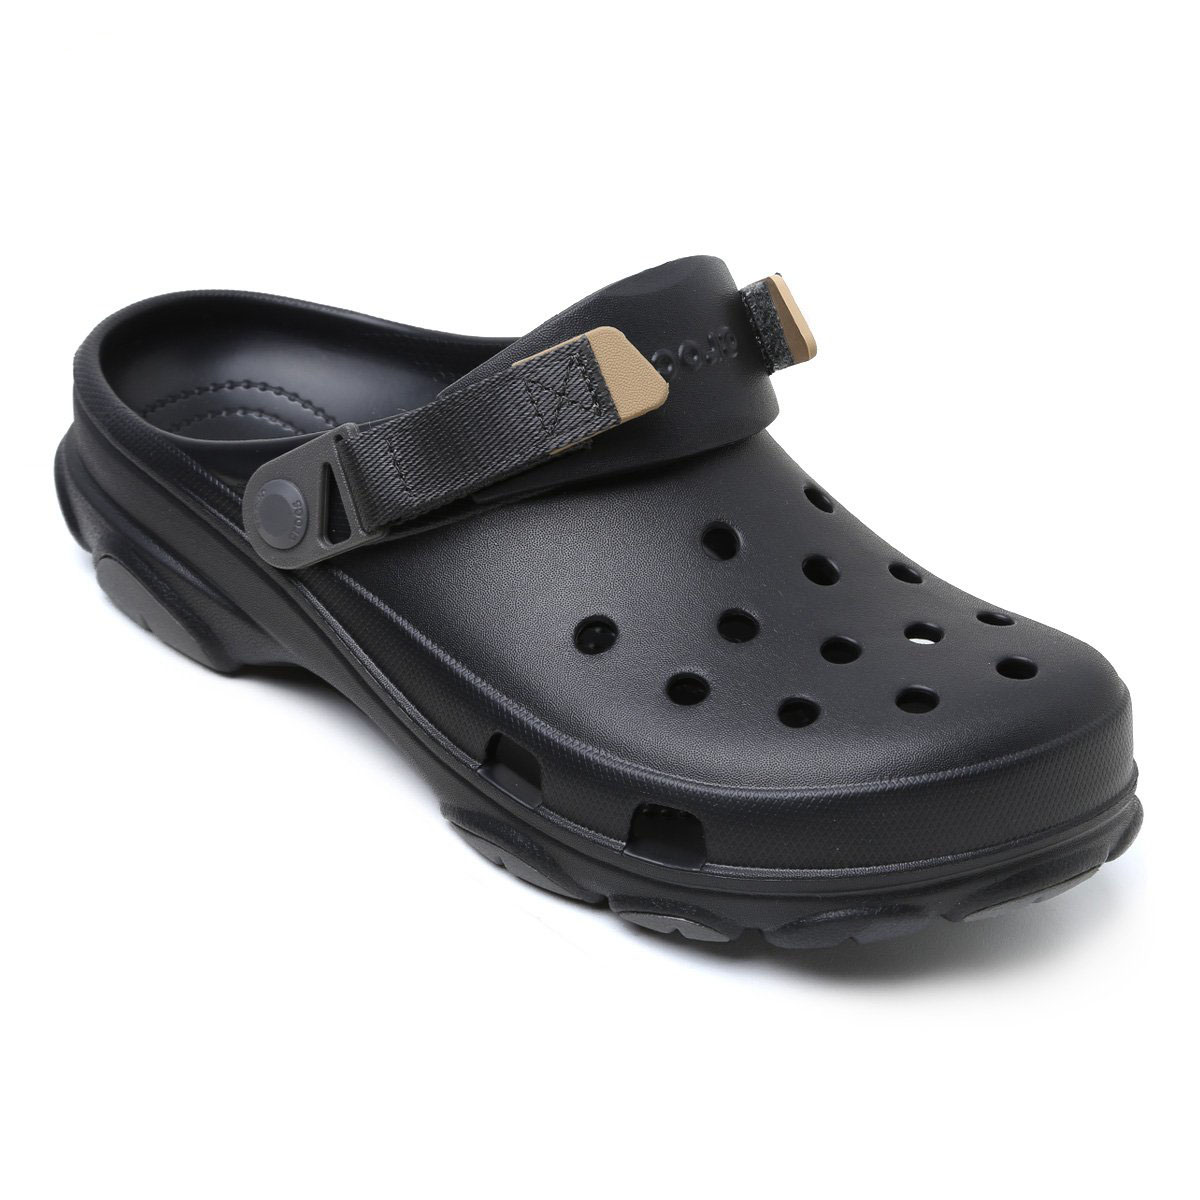 Crocs Classic All Terrain Clog